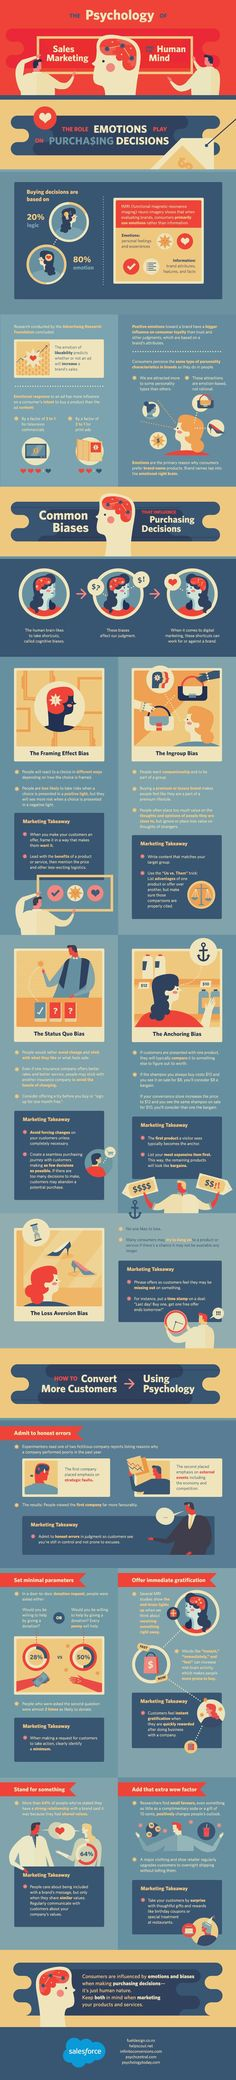 The psychology of marketing #infographic #marketing